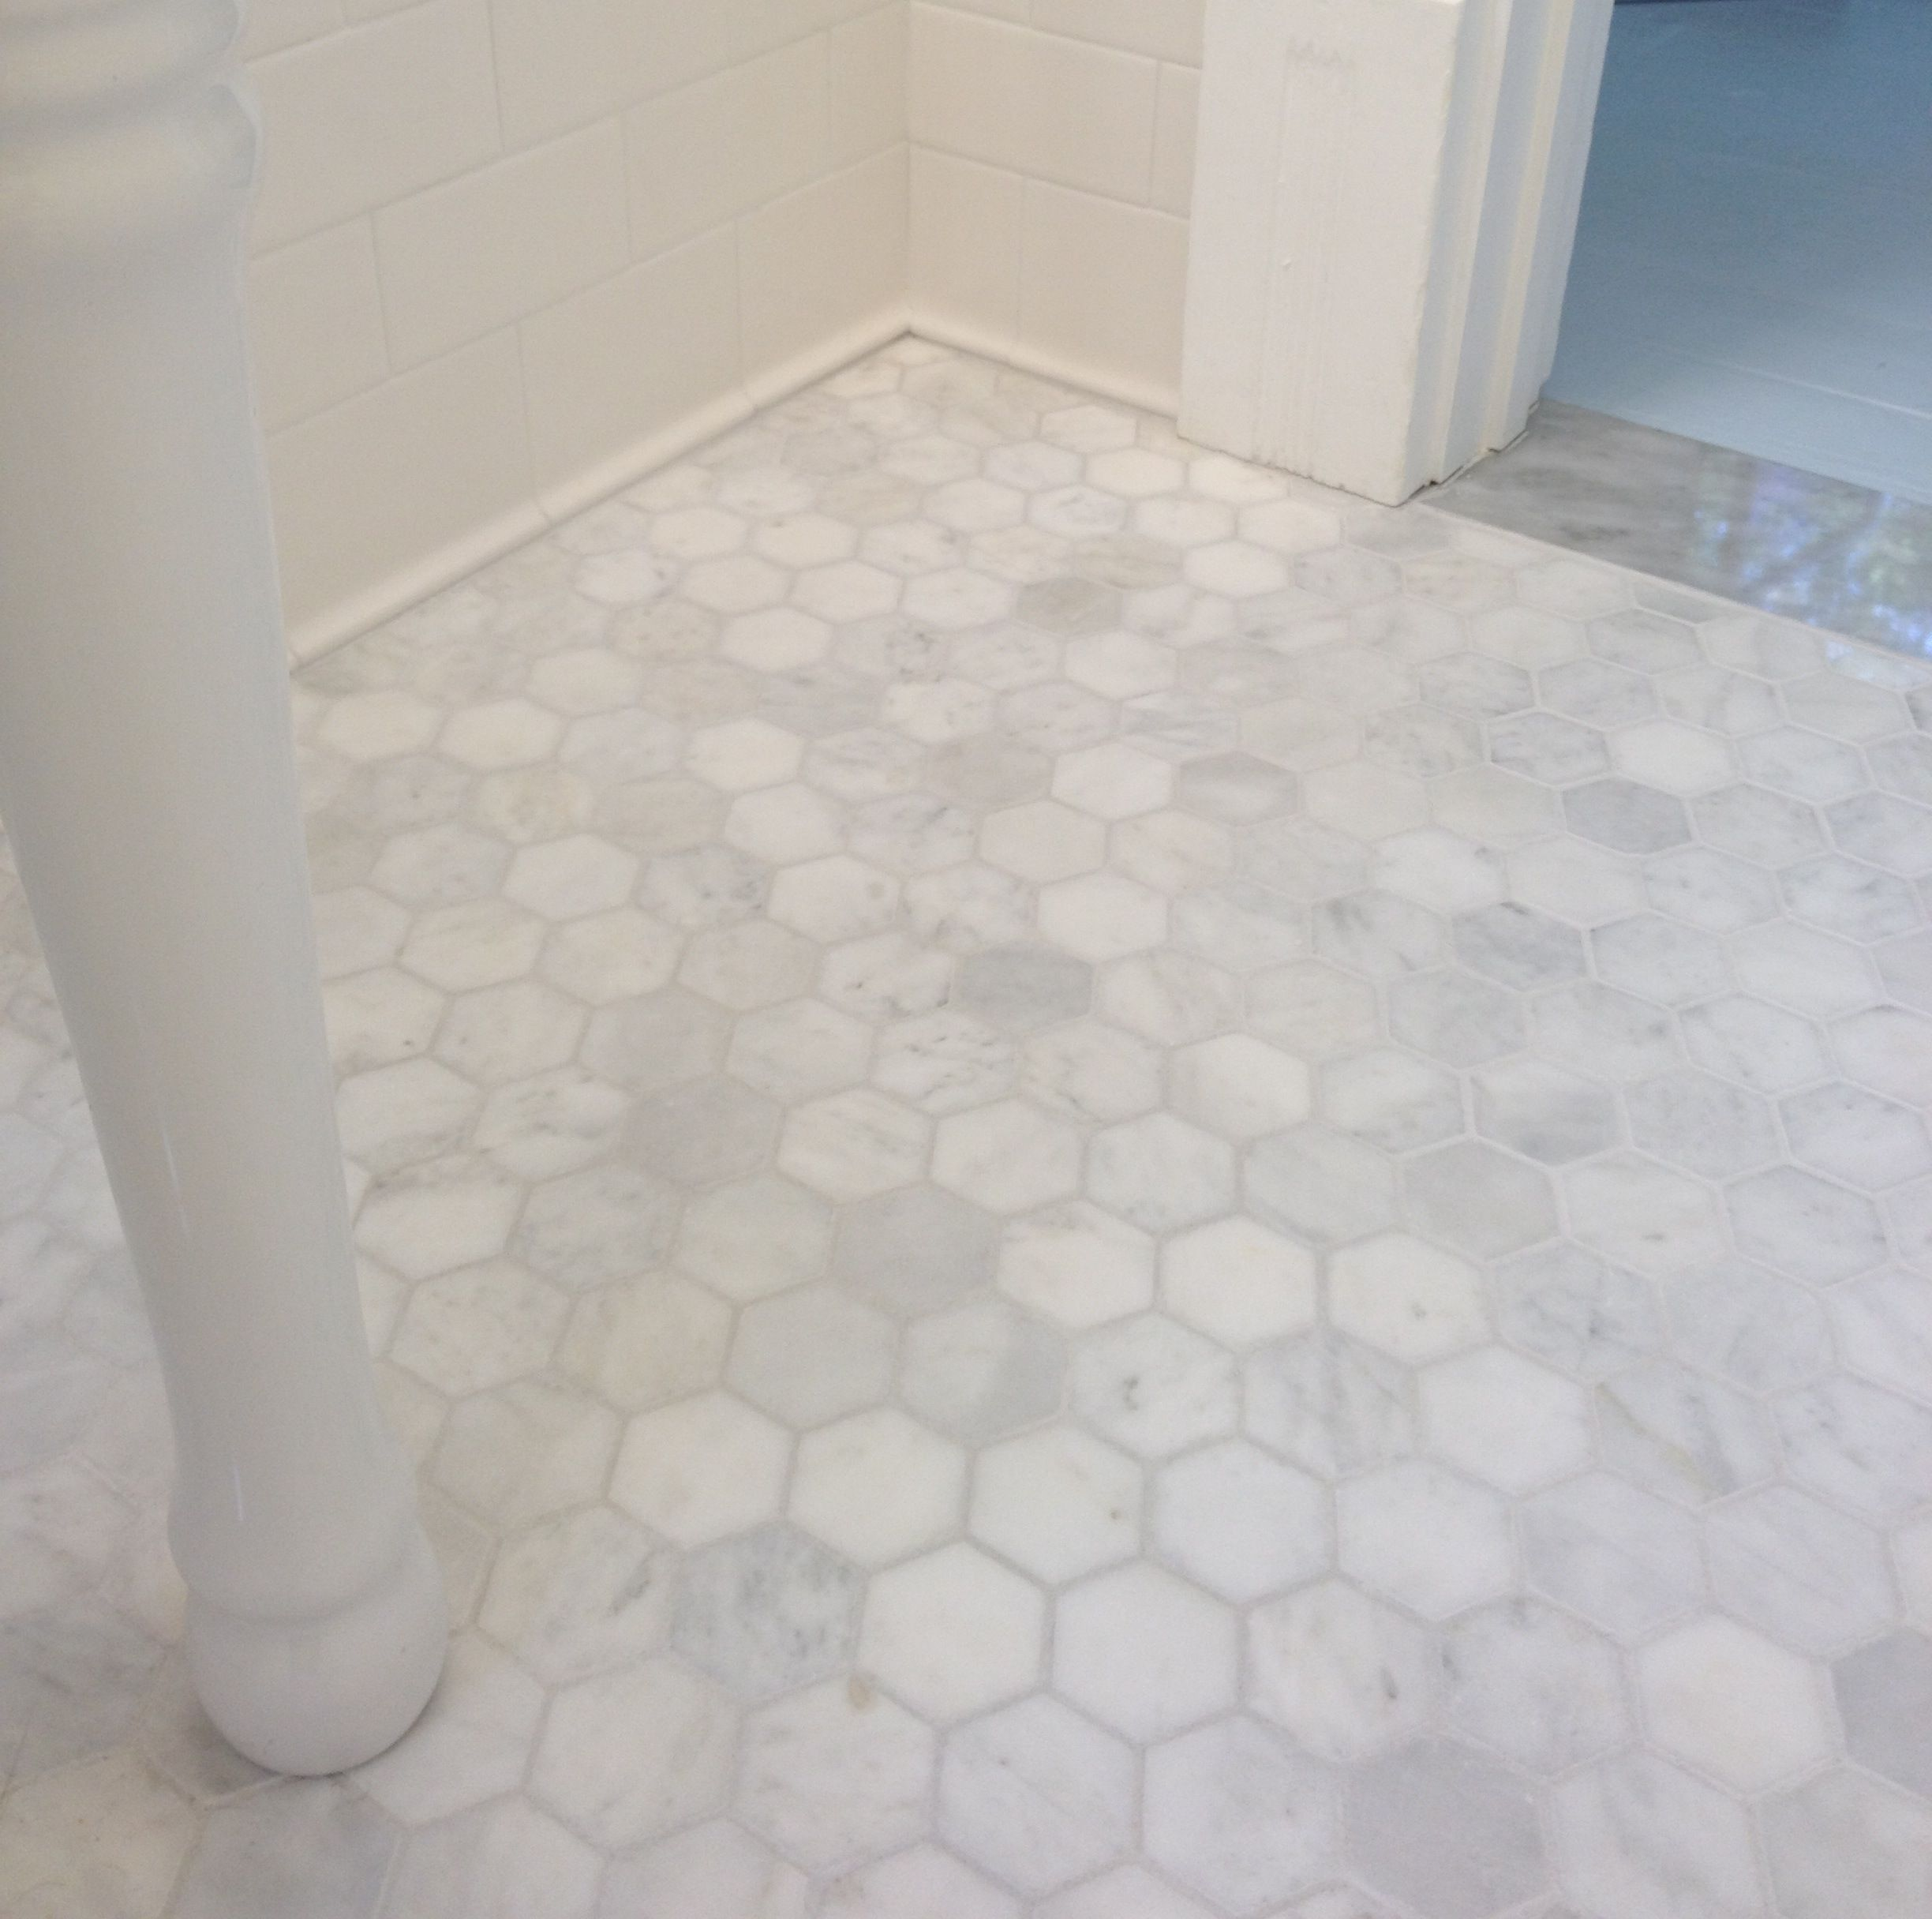 You must pick a tile or there will be no floor grey grout marble hexagon tile grey grout subway tile porcelain console sink grey carrara dailygadgetfo Images